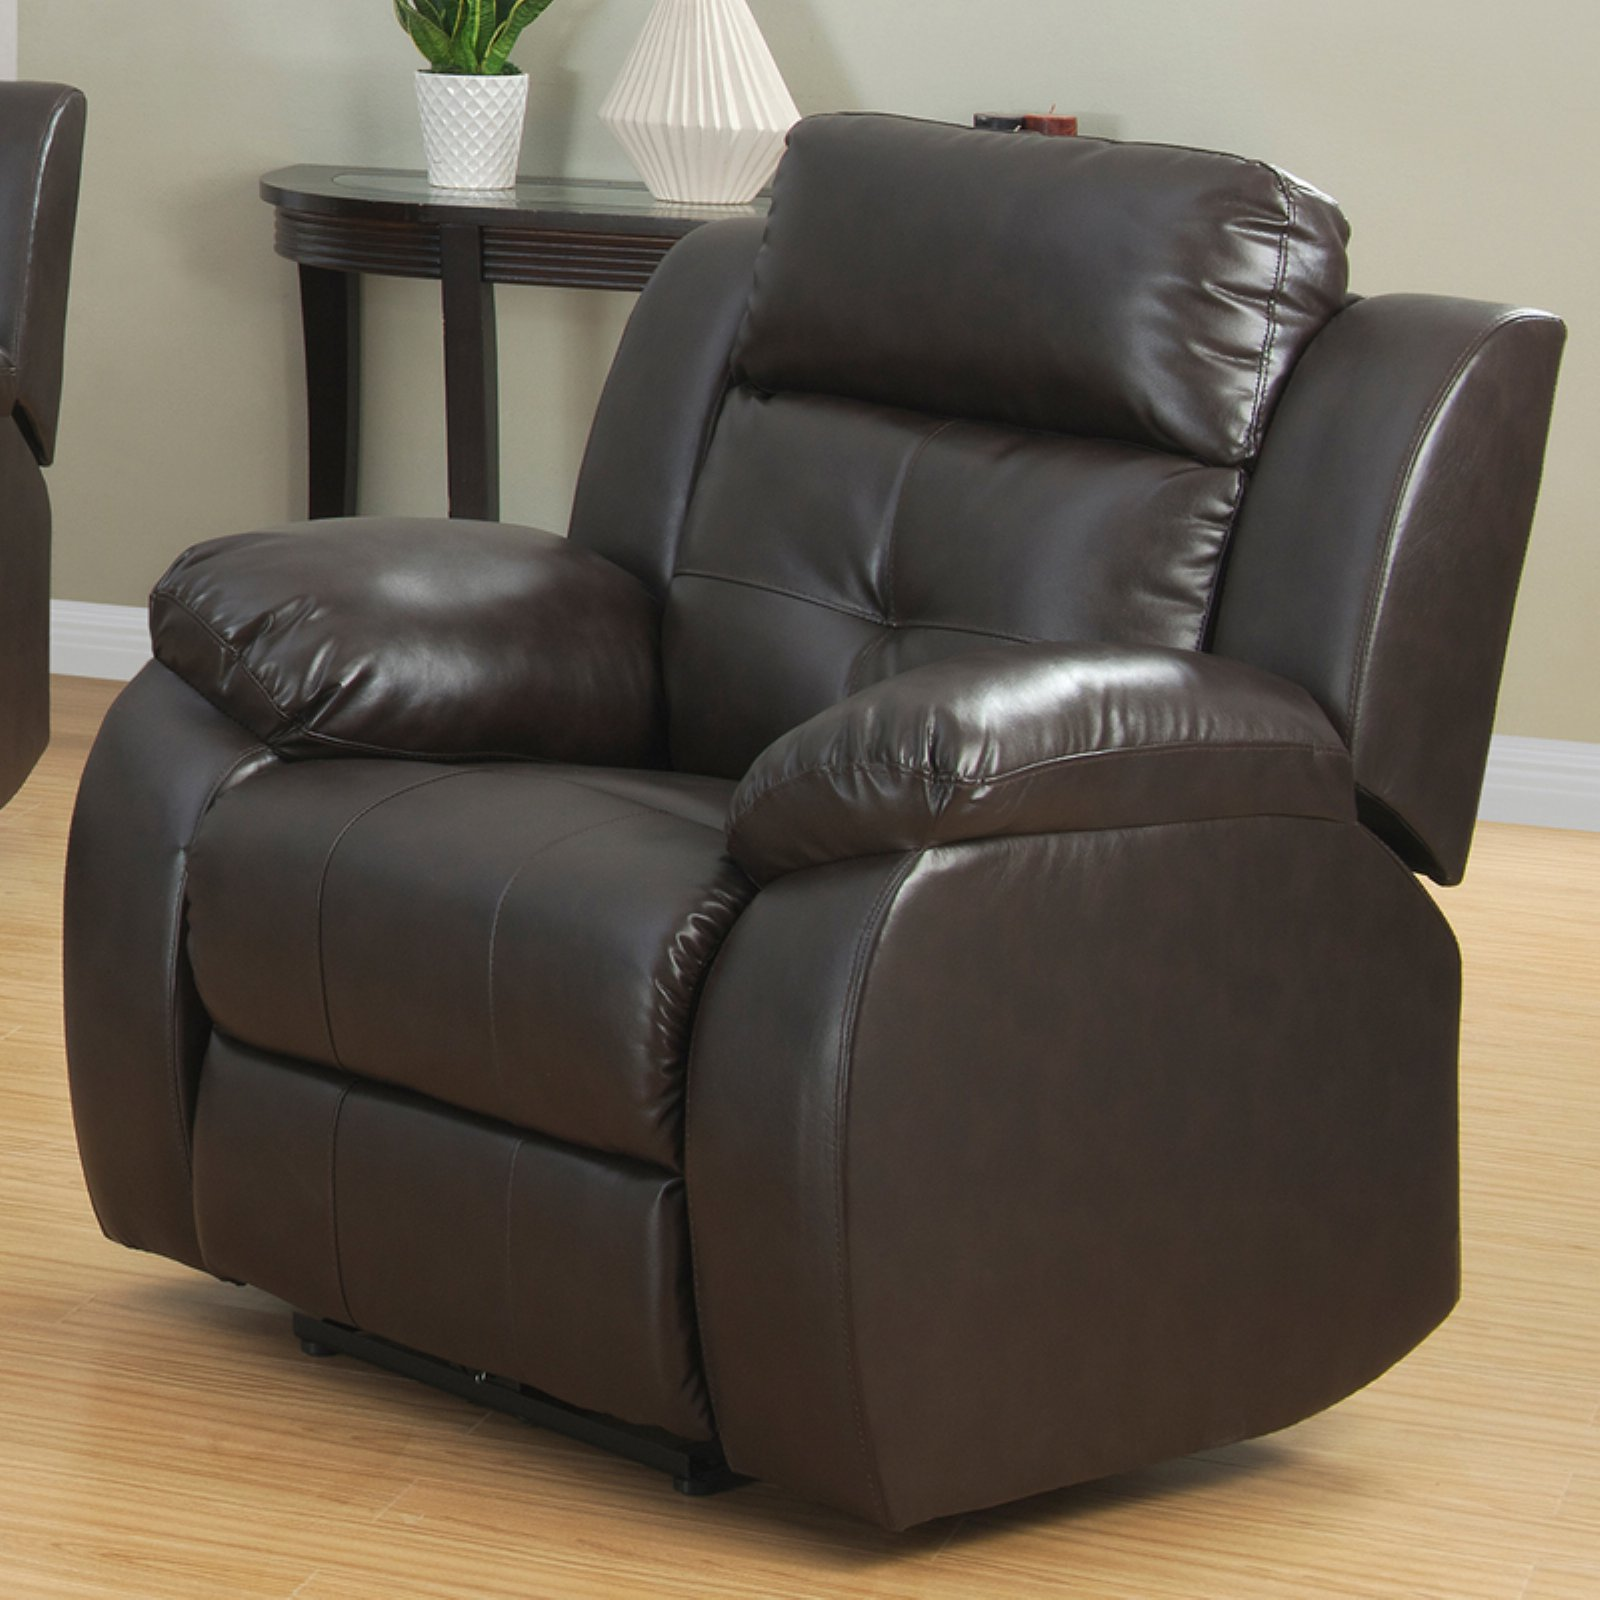 Christies Home Living Troy Collection Power Reclining Armchair